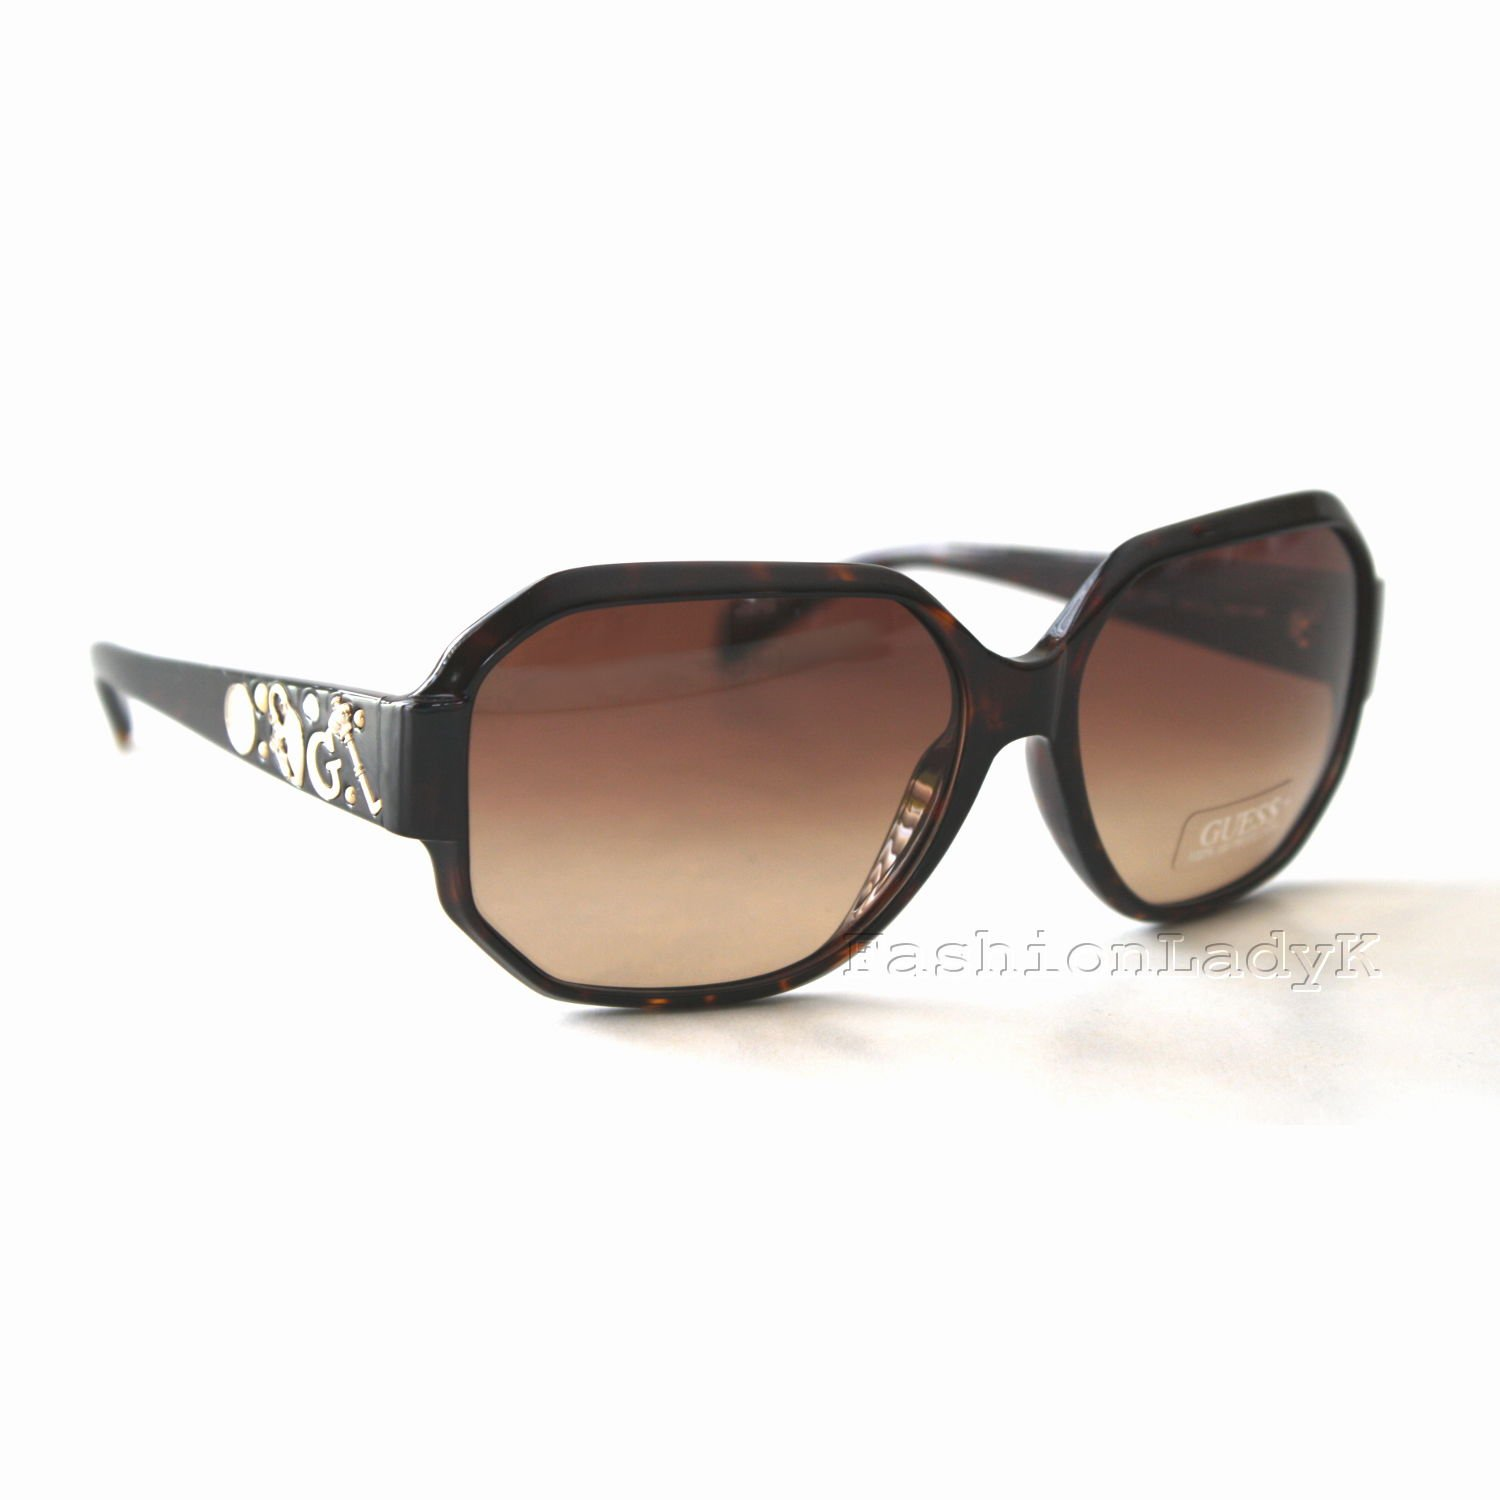 GUESS Women Brown Sunglasses GU7025 TO-34 New w/ Case